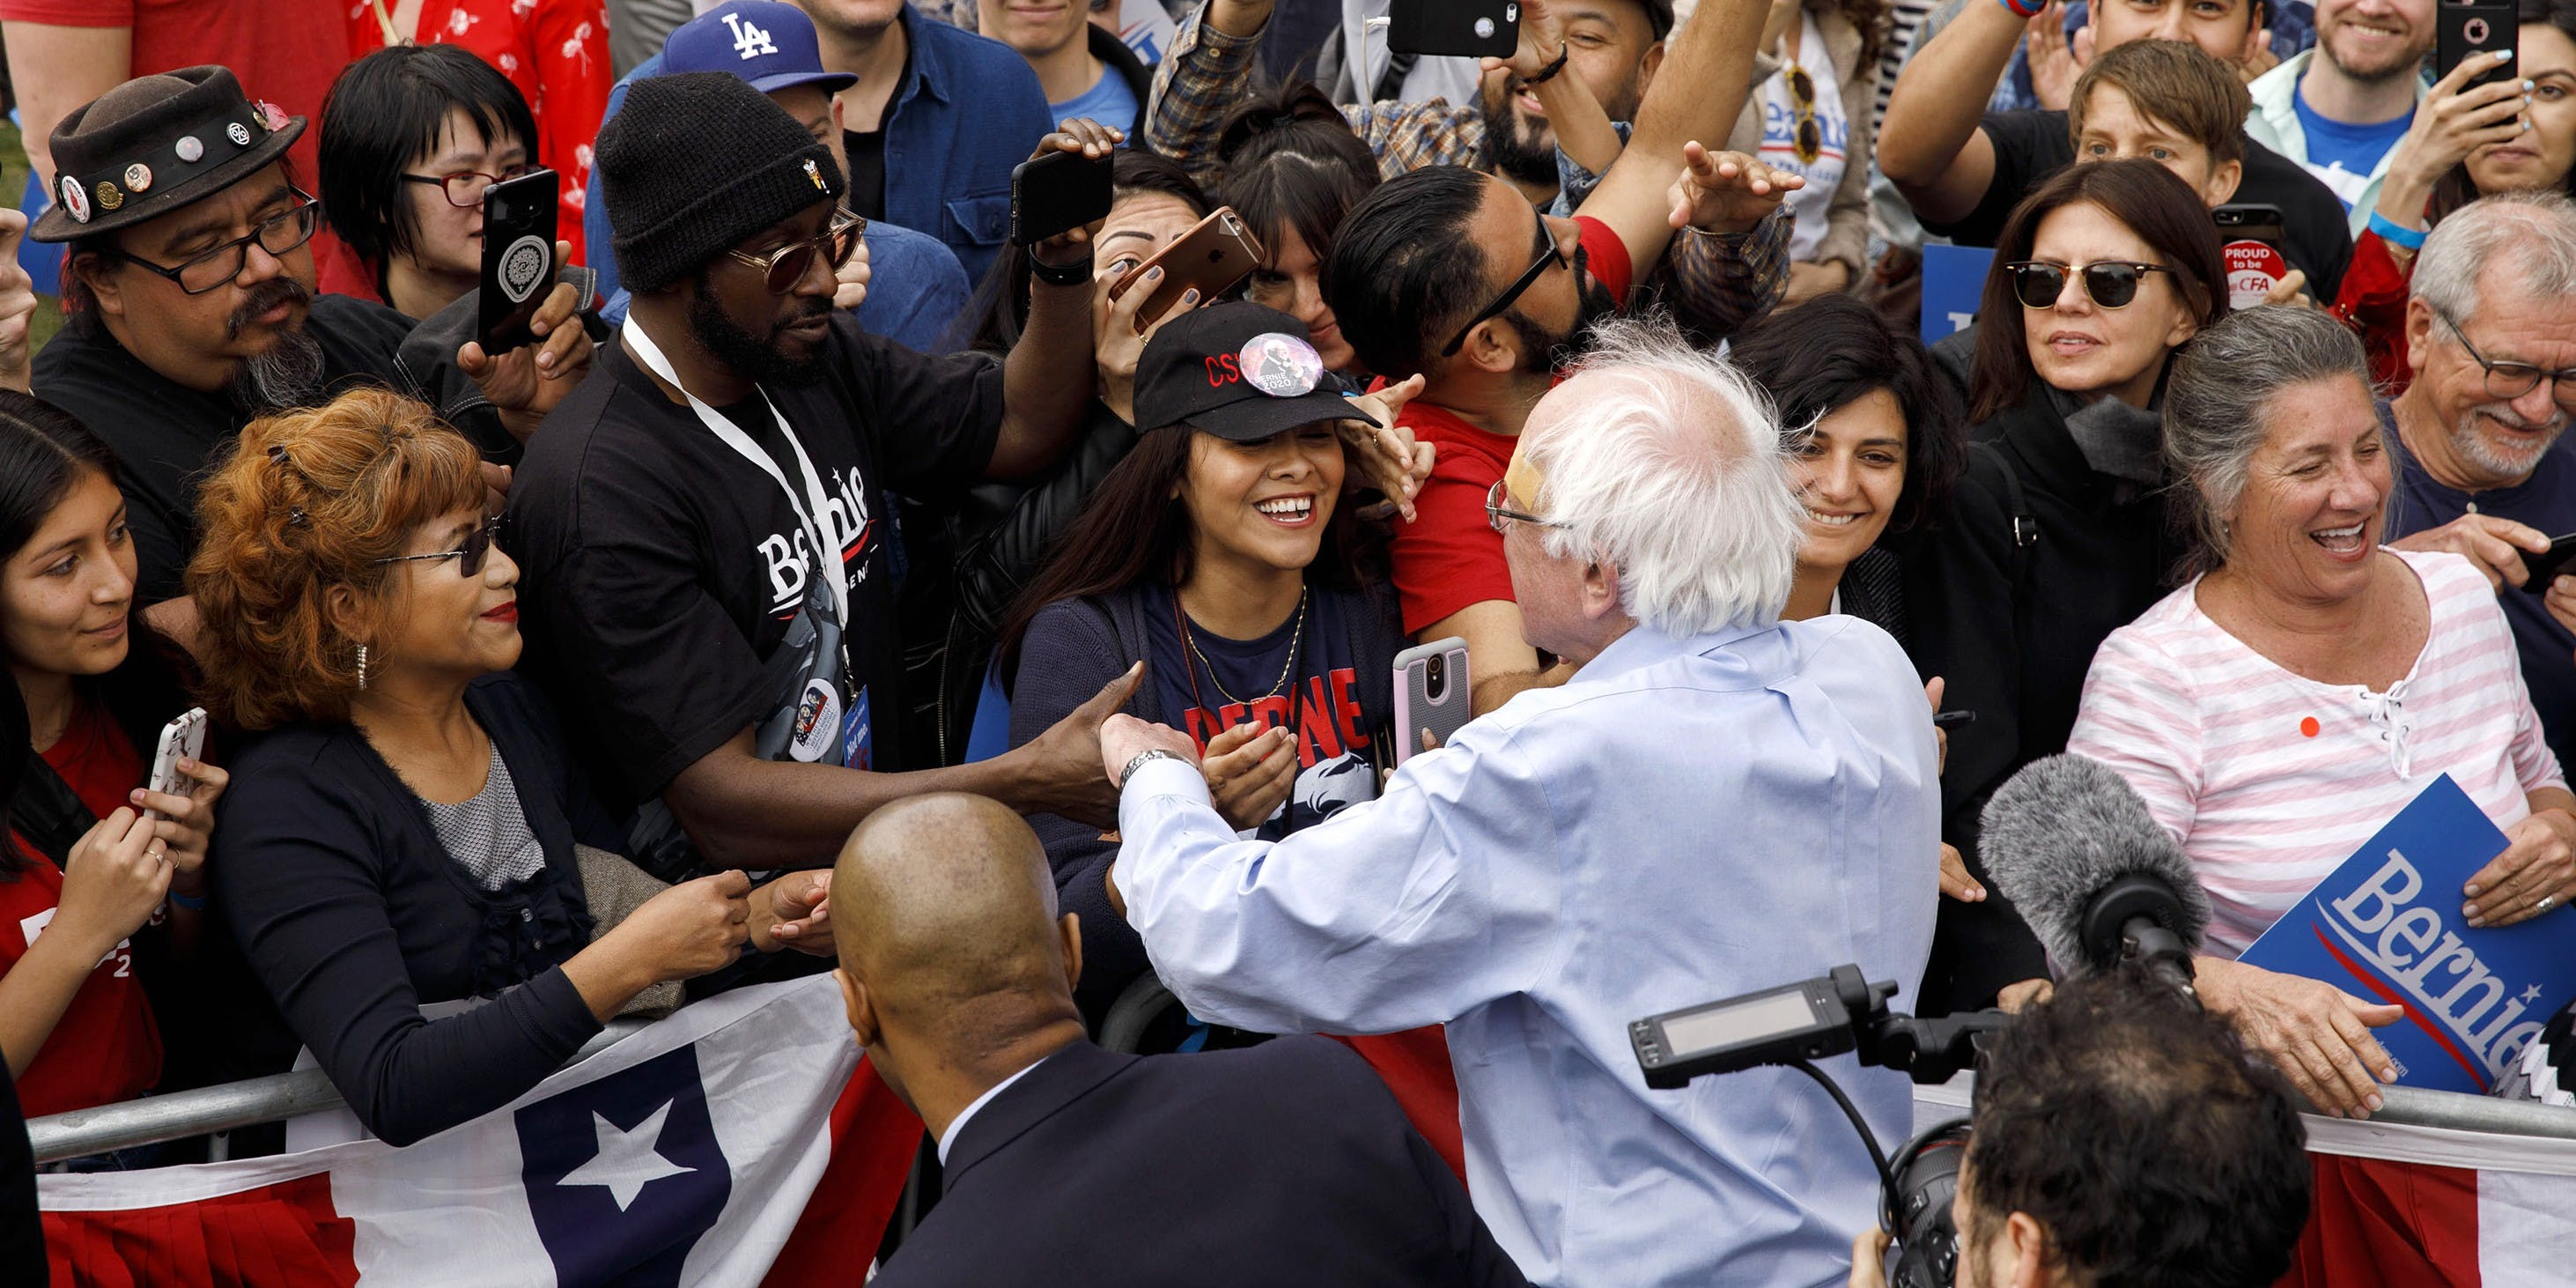 Bernie Sanders Is the Most Popular 2020 Candidate Among Hispanic Voters, New Polling Finds